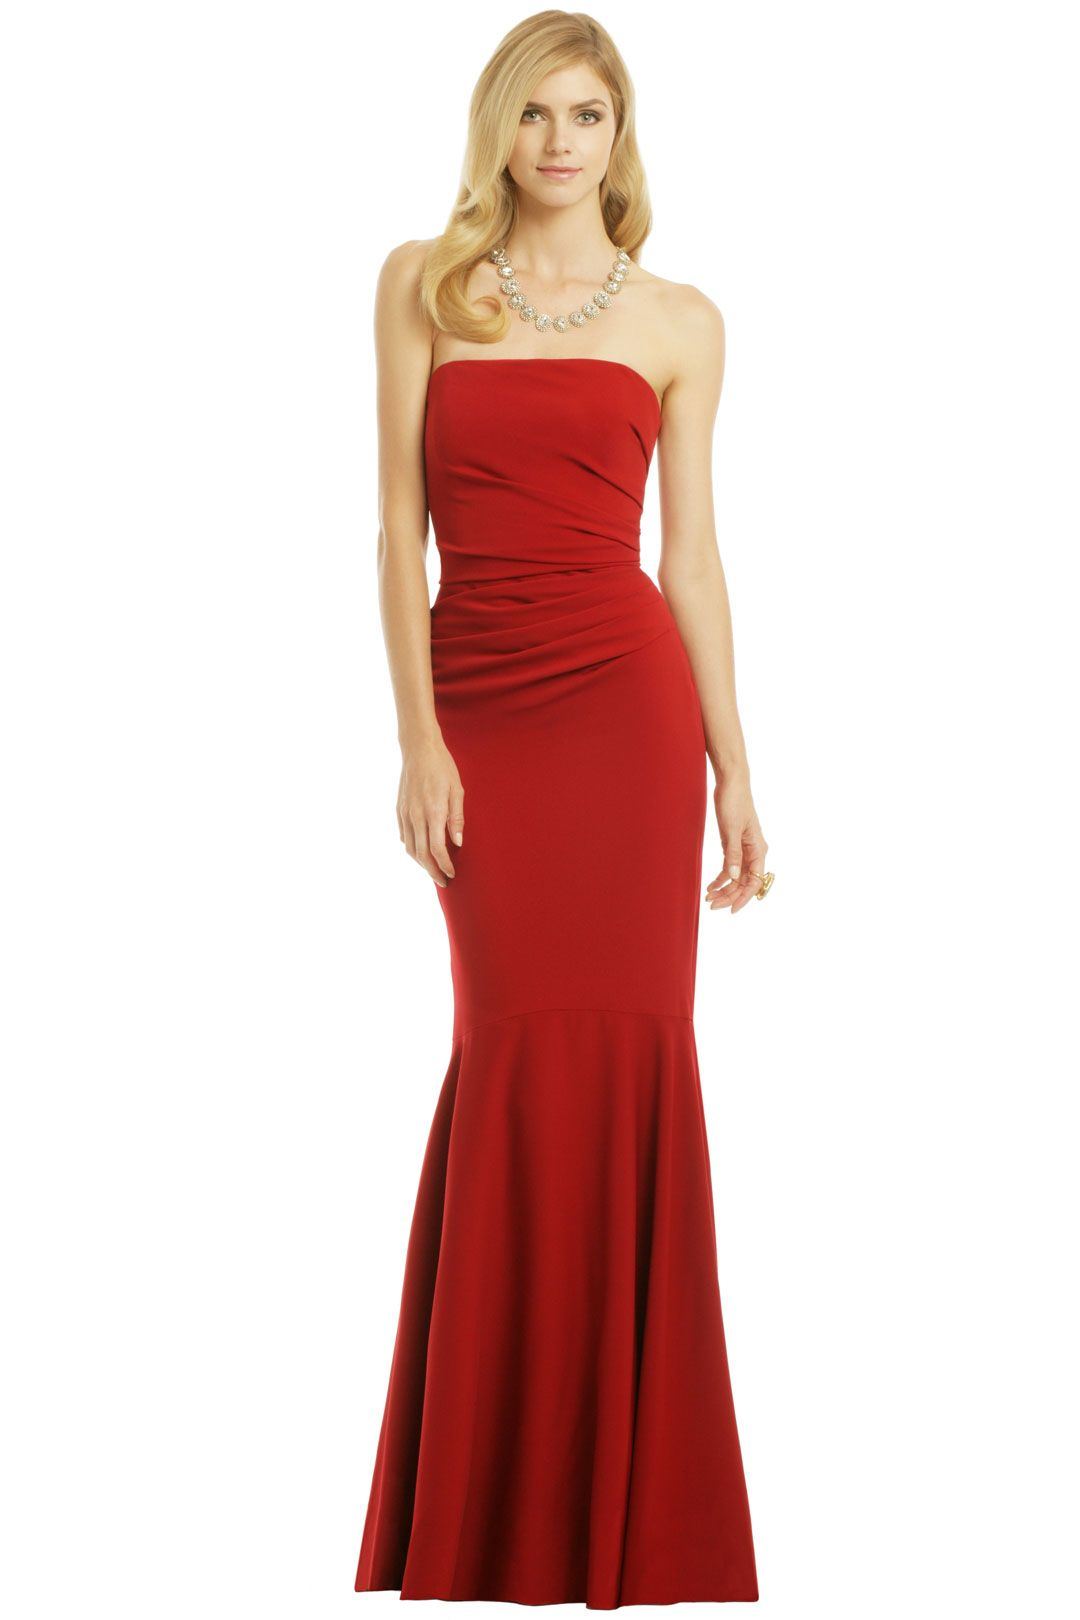 Badgley Mischka Beauty in a Bottle Gown - This is the only red I ...